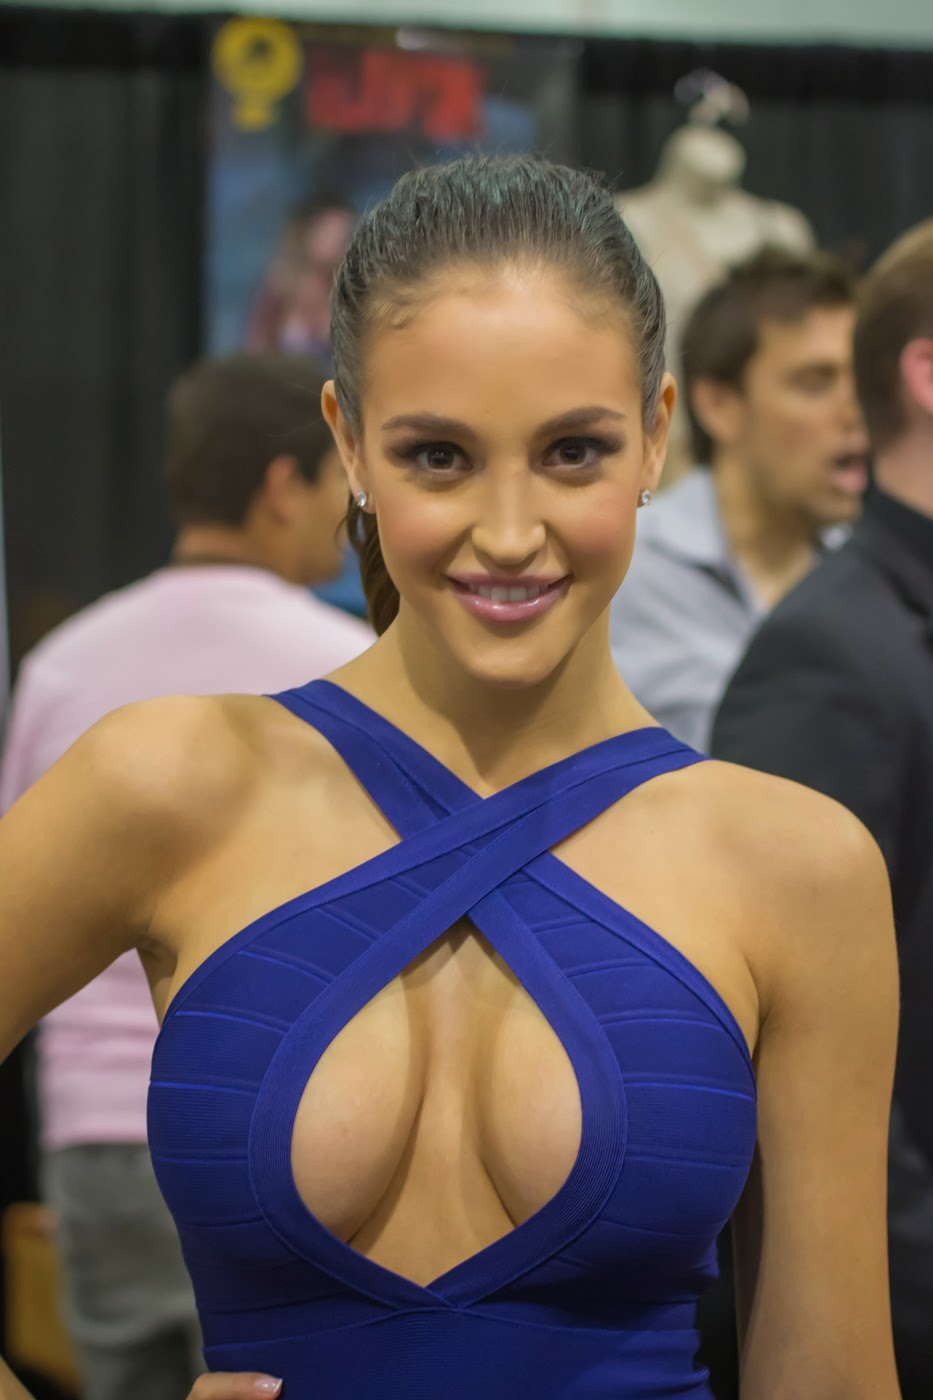 Jaclyn Swedberg naked (17 photo) Hacked, Snapchat, lingerie